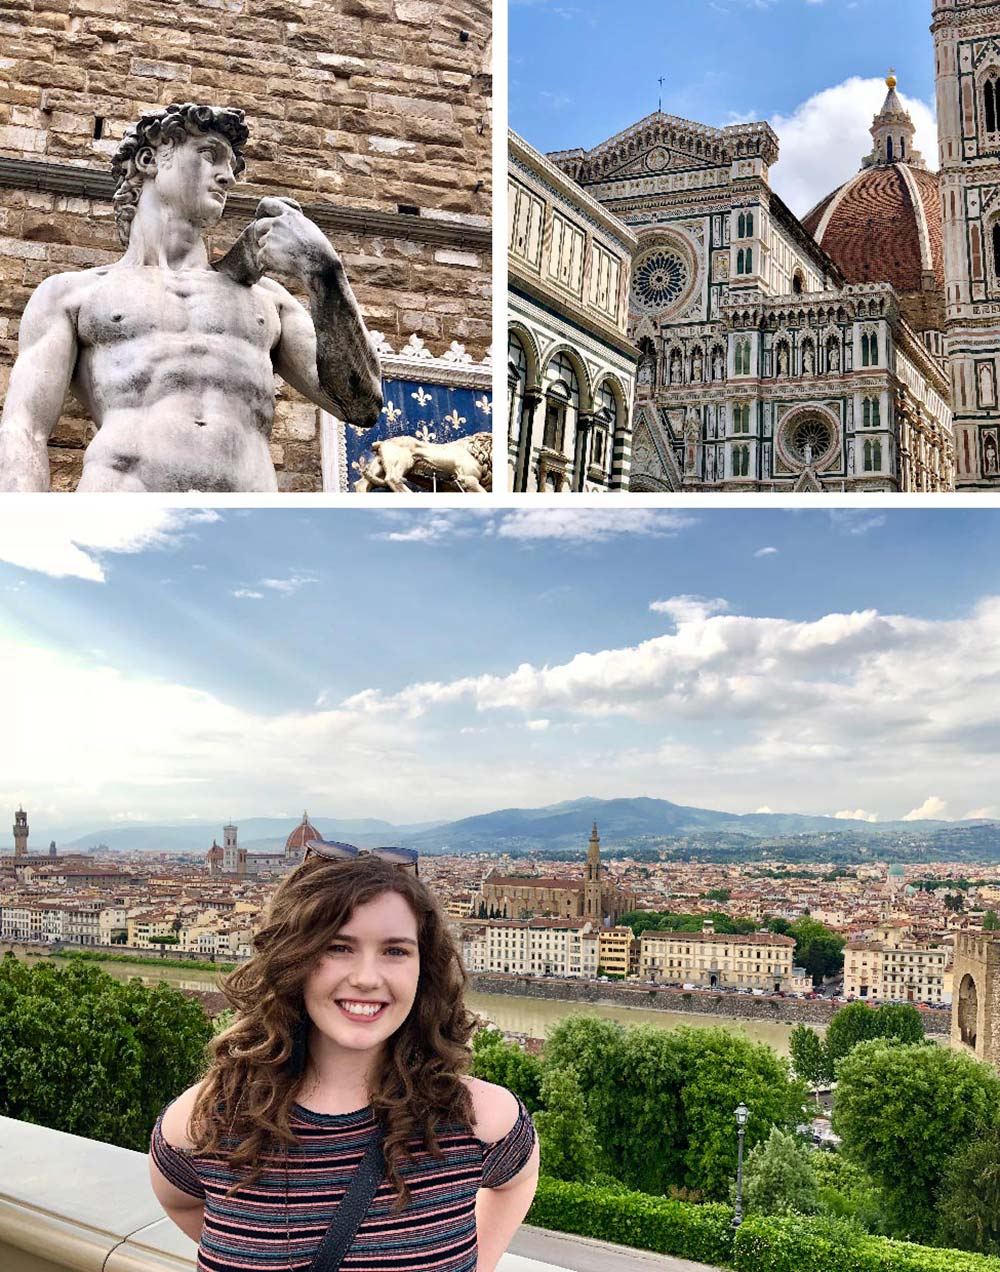 Statue of David in Loggia Dei Lanzi, Cathedral of Sante Maria sea Fiore, view of Florence from Pizzale Michelangelo, Florence, Italy